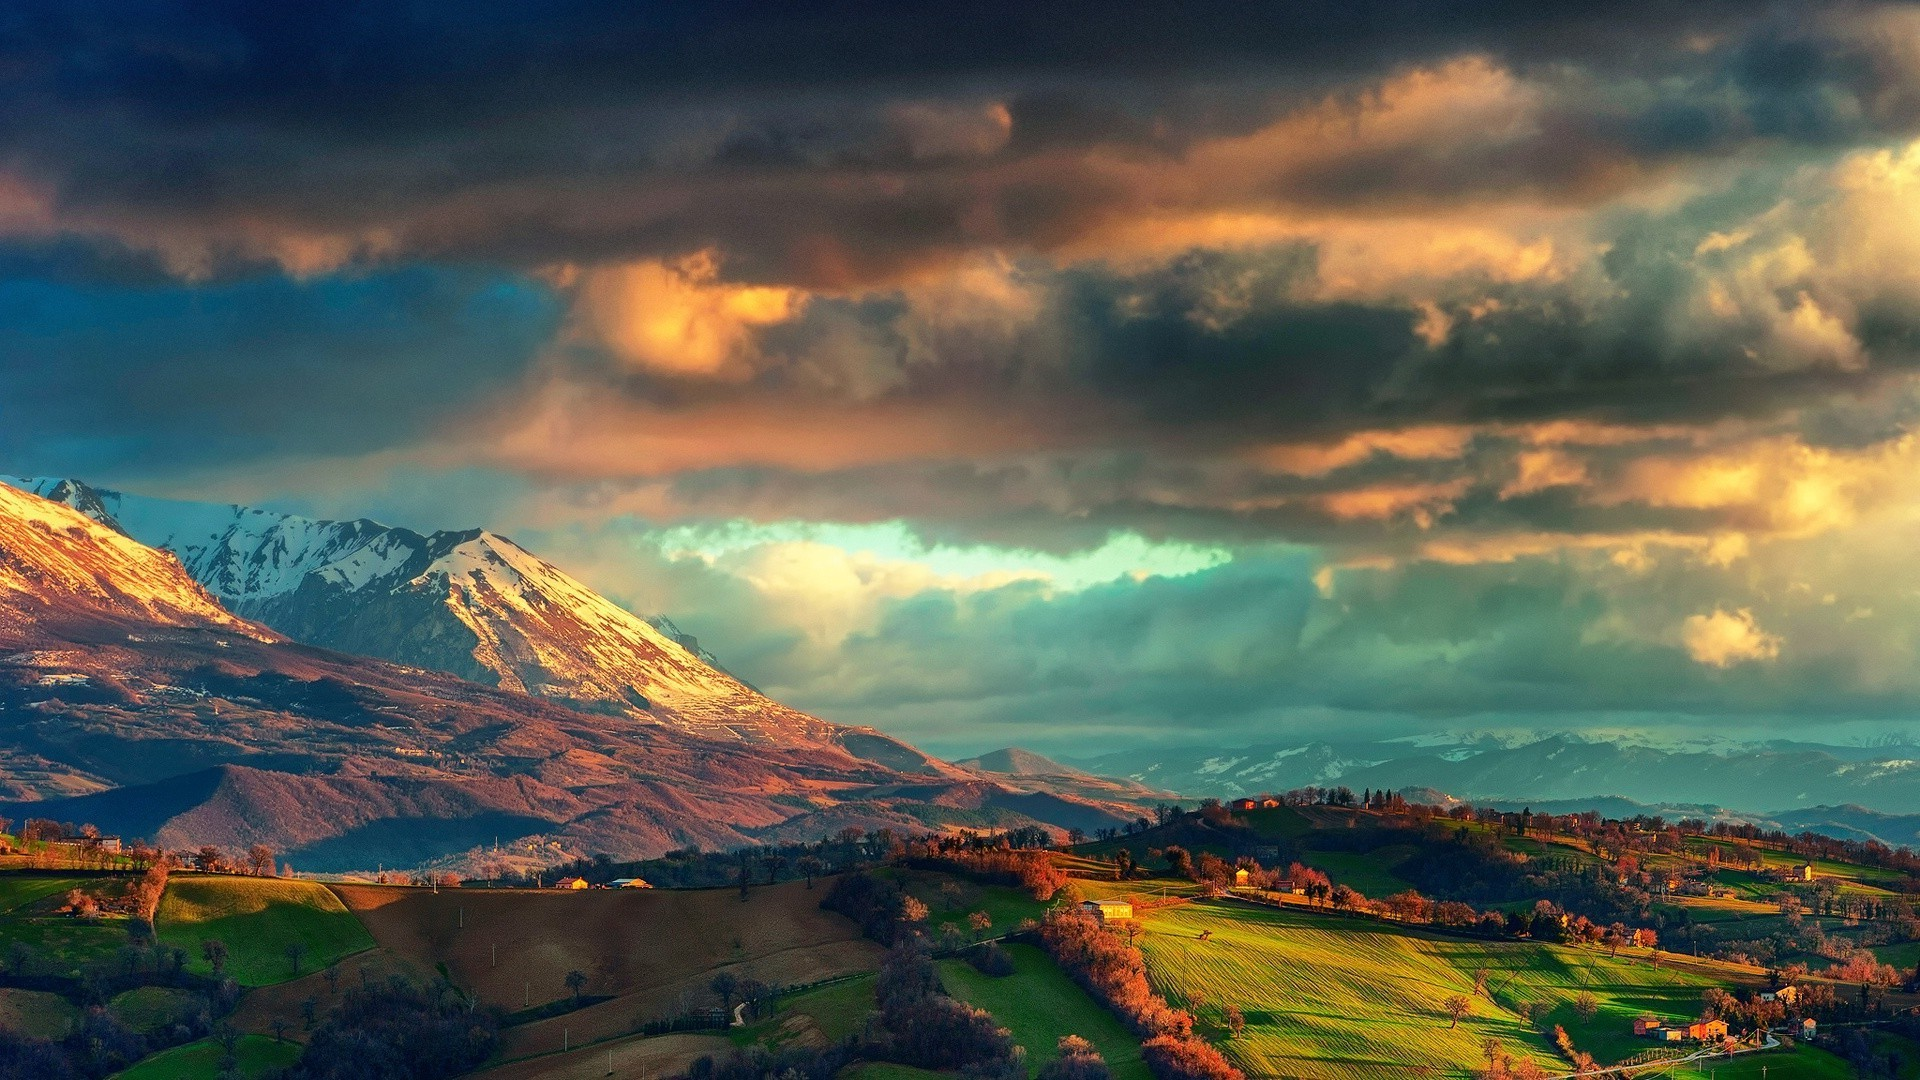 apennine-mountains-italy-nature-hd-wallpaper-1920×1080-2500   the